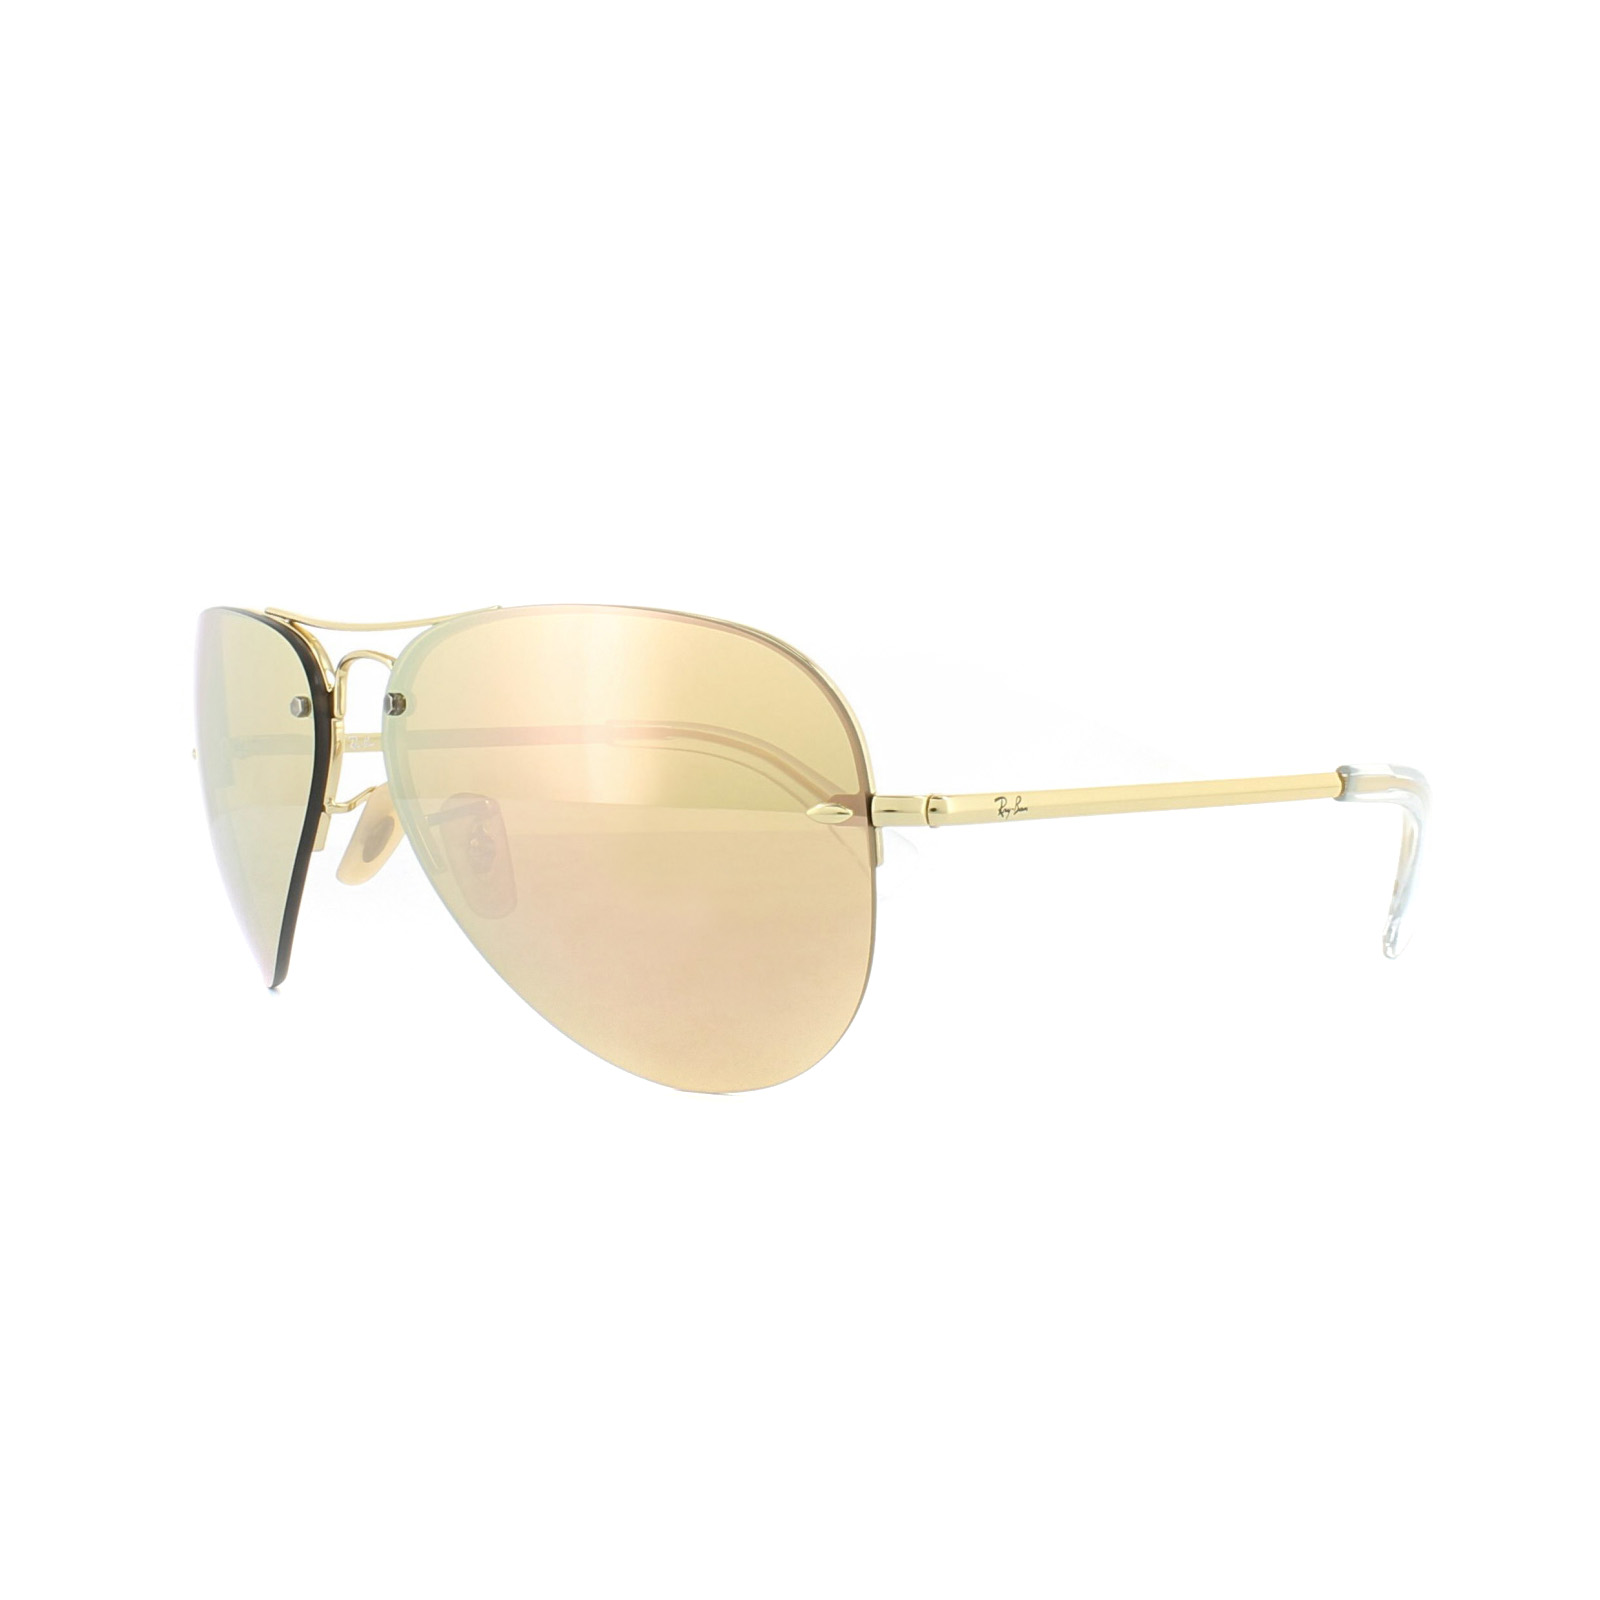 37453a2b988 Details about Ray-Ban Sunglasses 3449 001 2Y Gold Copper Mirror